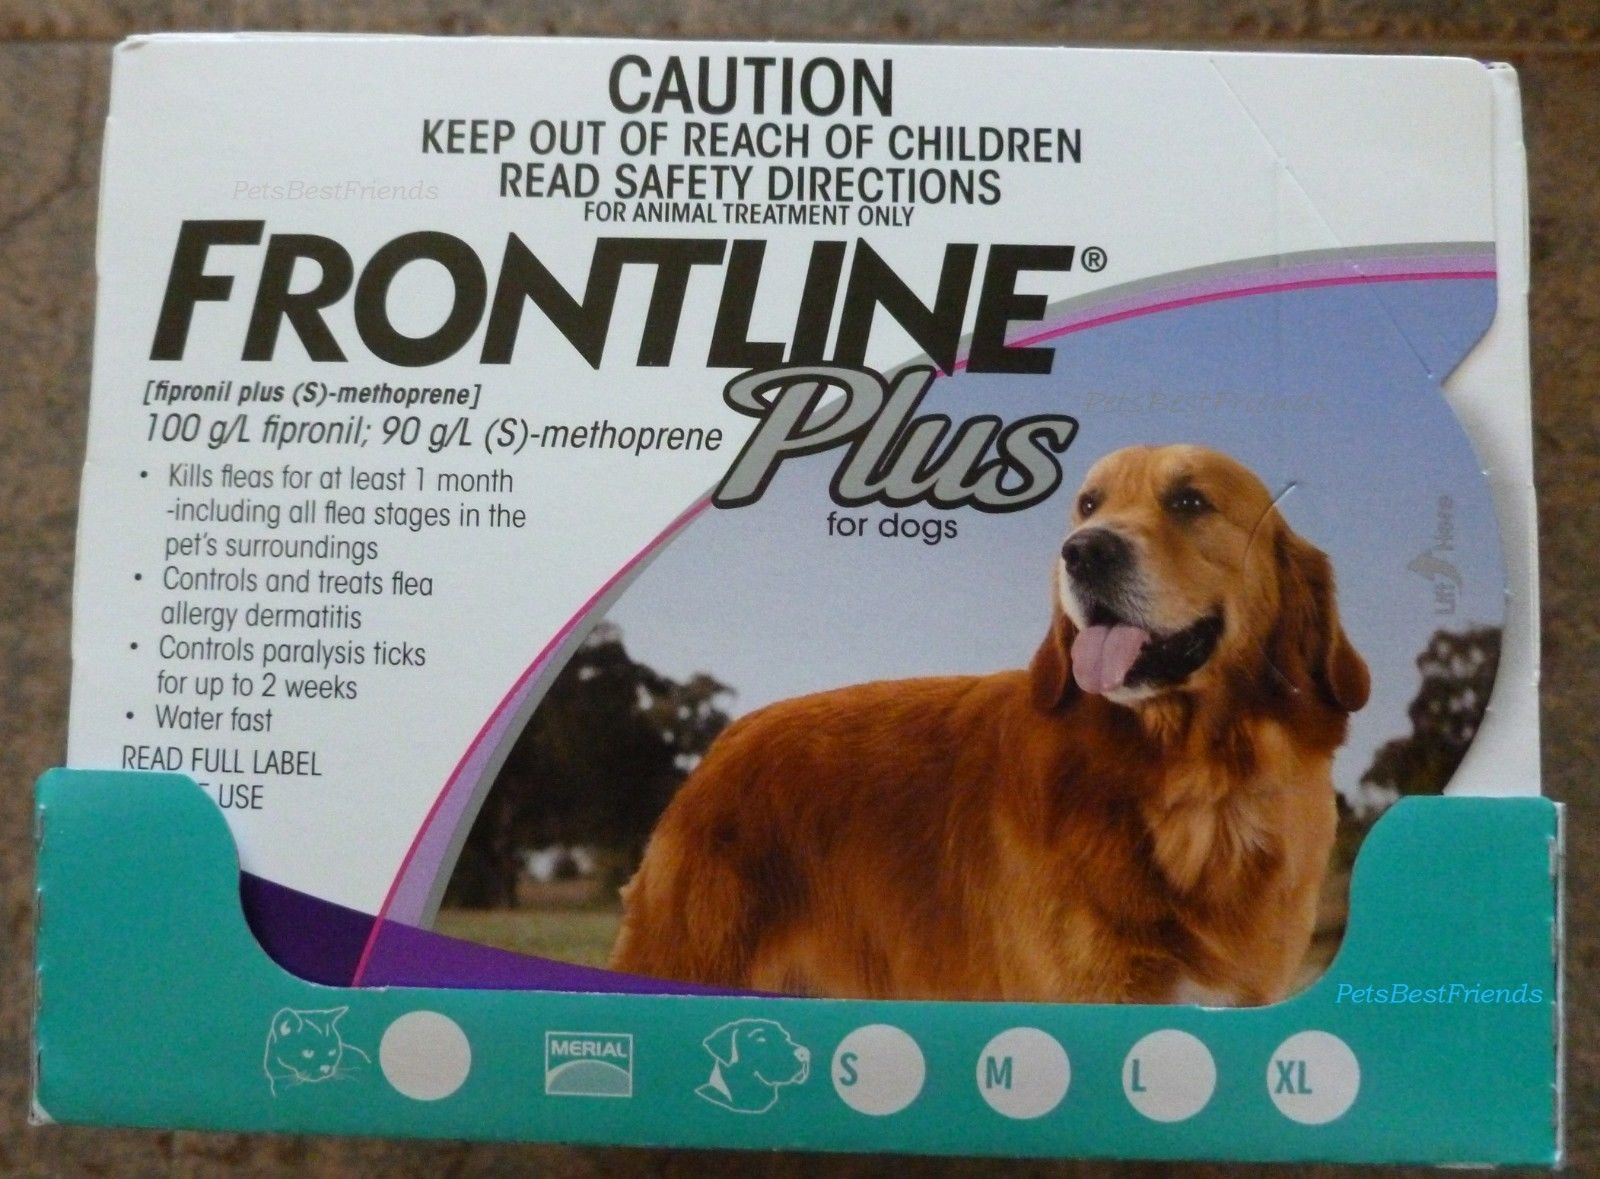 You are purchasing a box of Frontline Plus Flea Medication